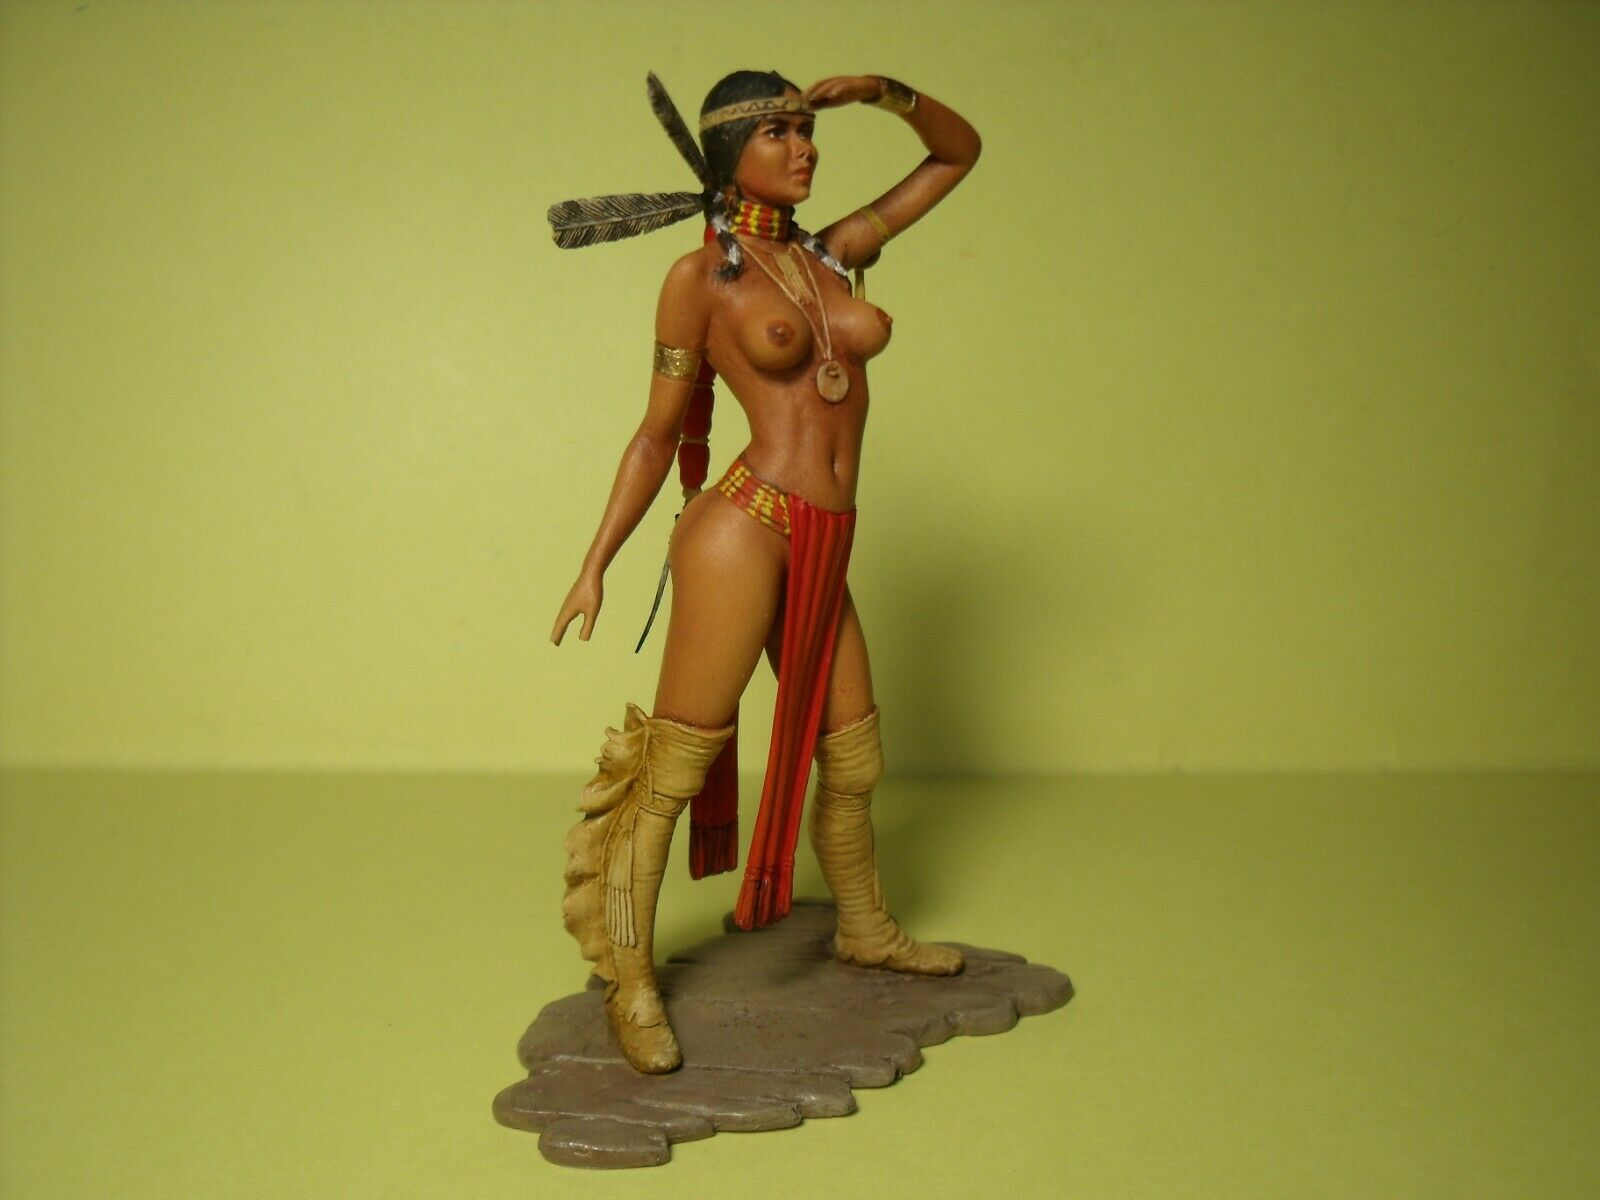 1 18  GIRL  cifra  SUMATI  PAINTED   BY  VROOM   FOR   EXOTO  MINICHAMPS 1 18